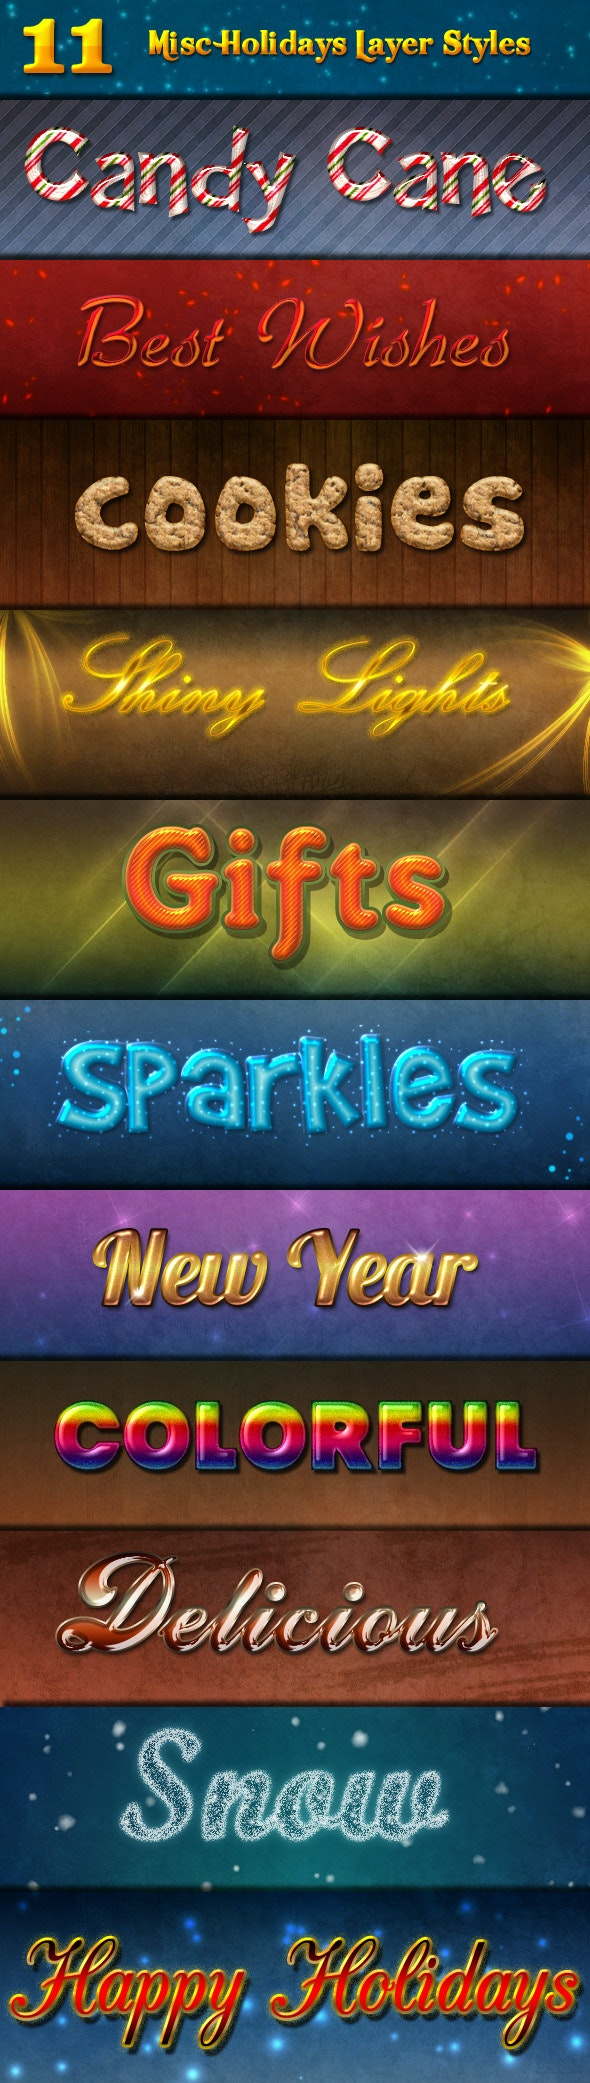 11 Misc Holidays Layer Styles - Text Effects Styles